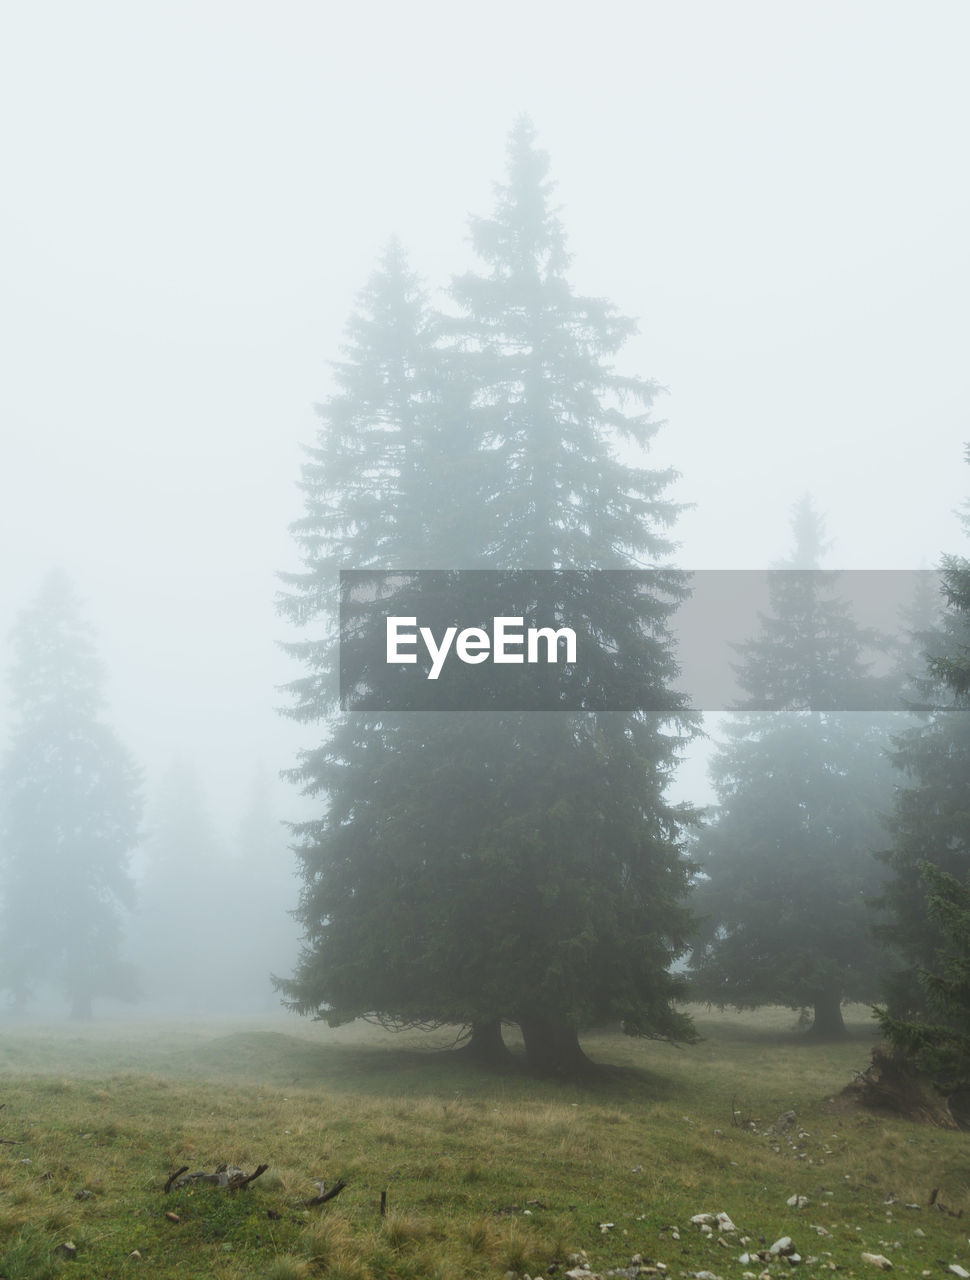 tree, nature, tranquility, landscape, fog, beauty in nature, tranquil scene, day, mist, growth, no people, hazy, outdoors, forest, scenics, winter, grass, cold temperature, sky